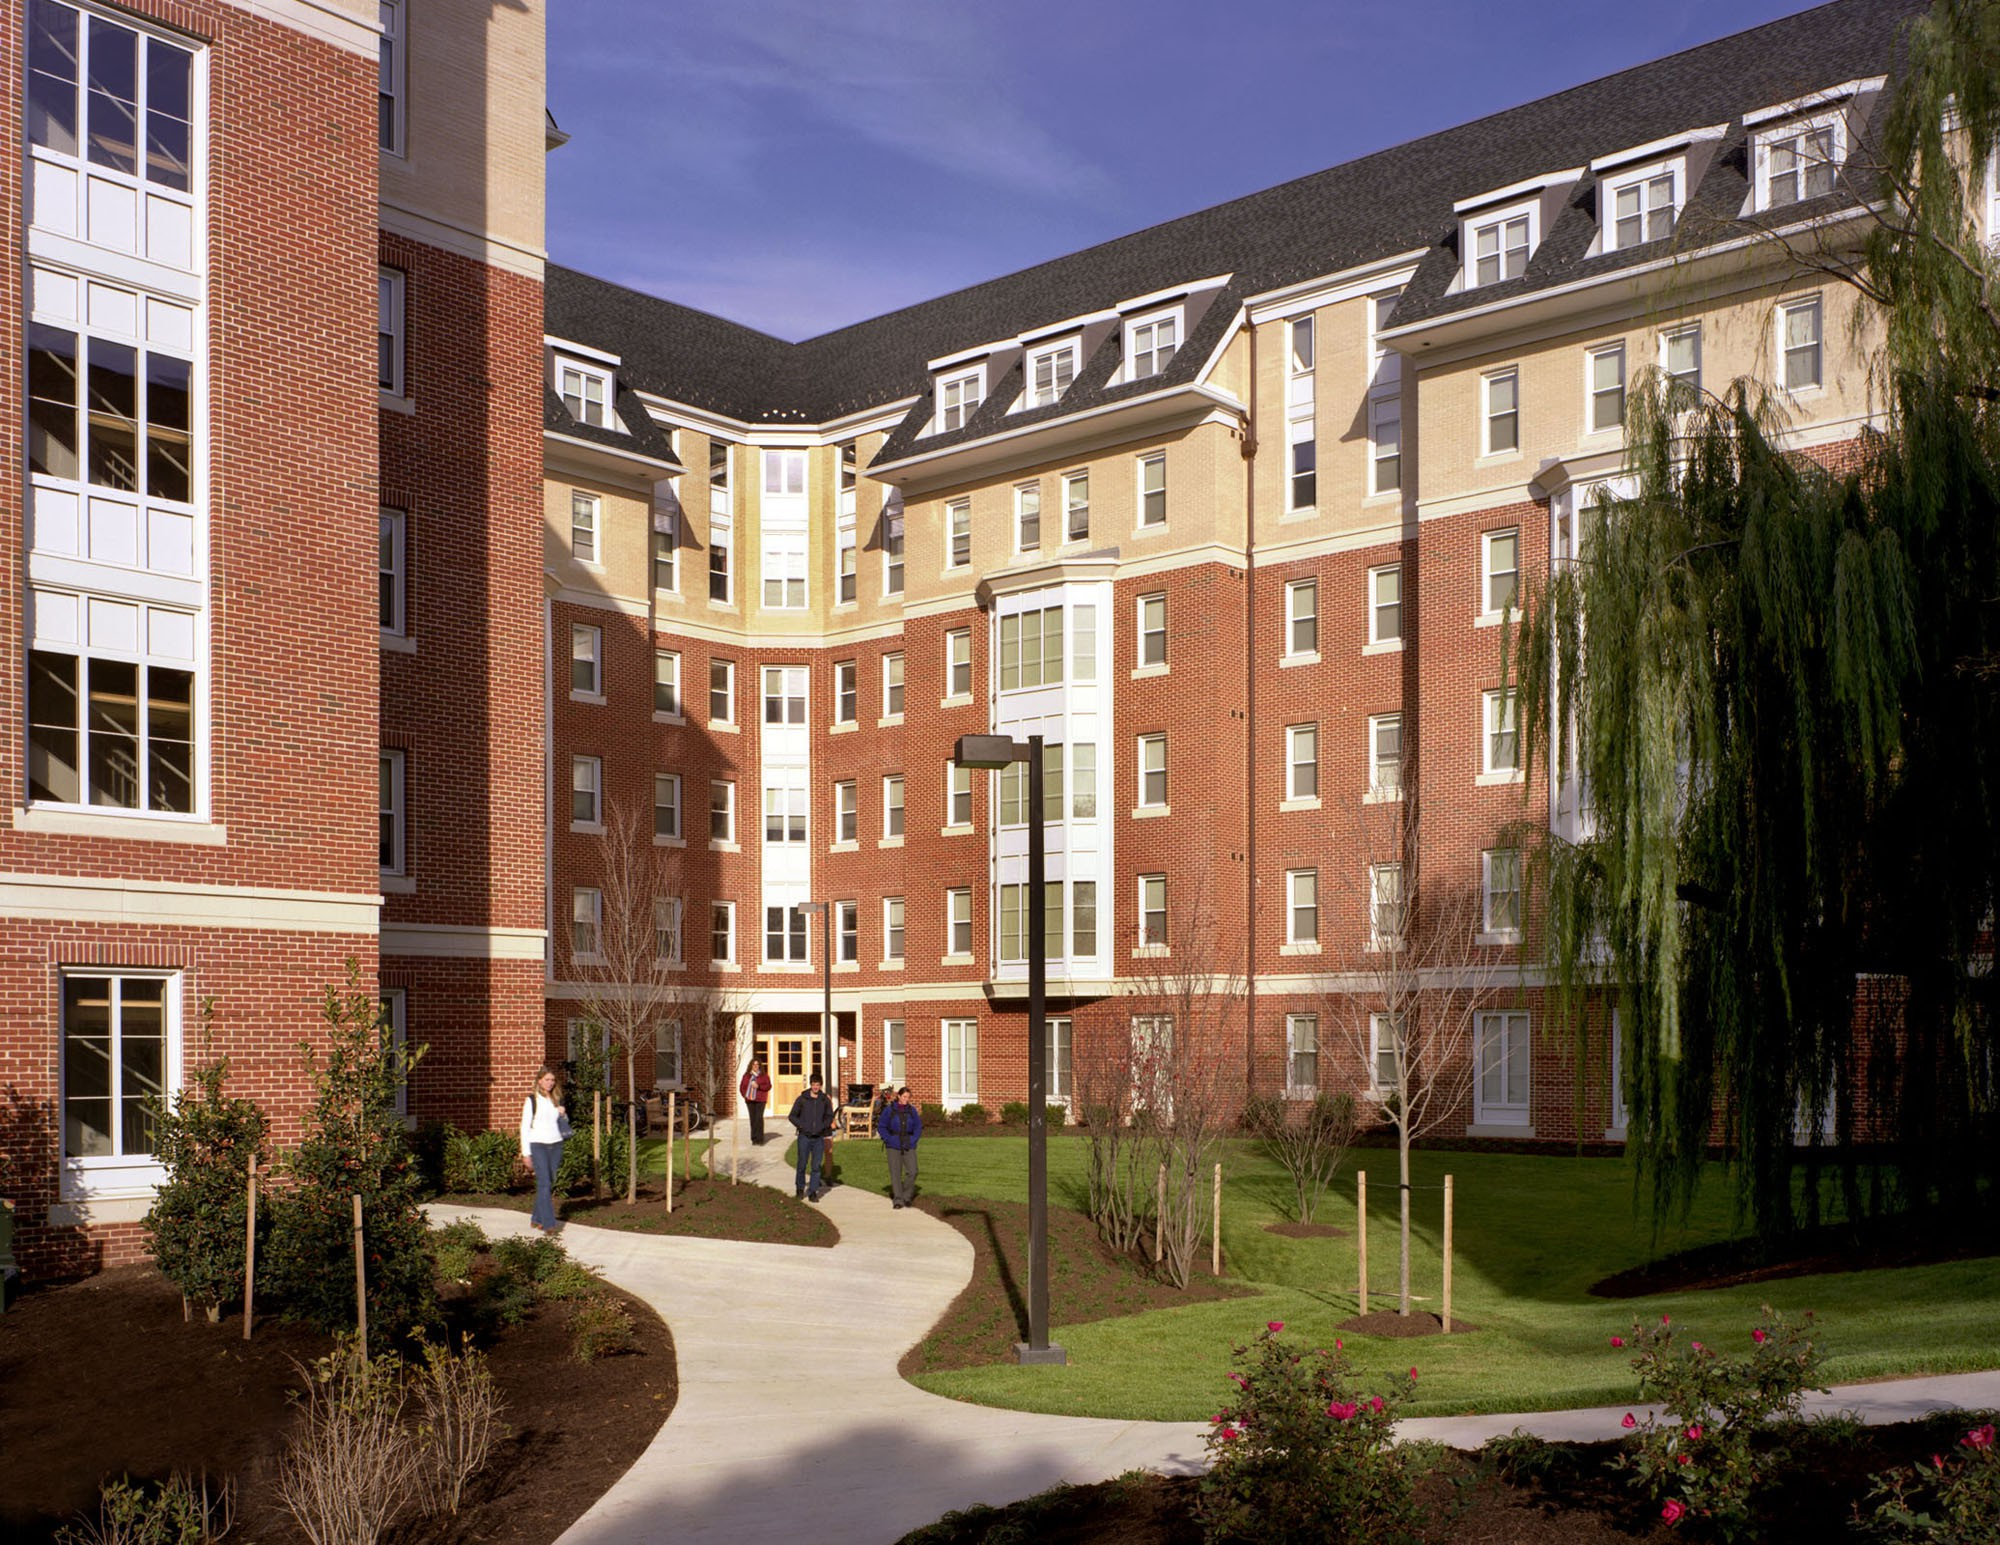 University of maryland college park south campus - University of maryland interior design ...